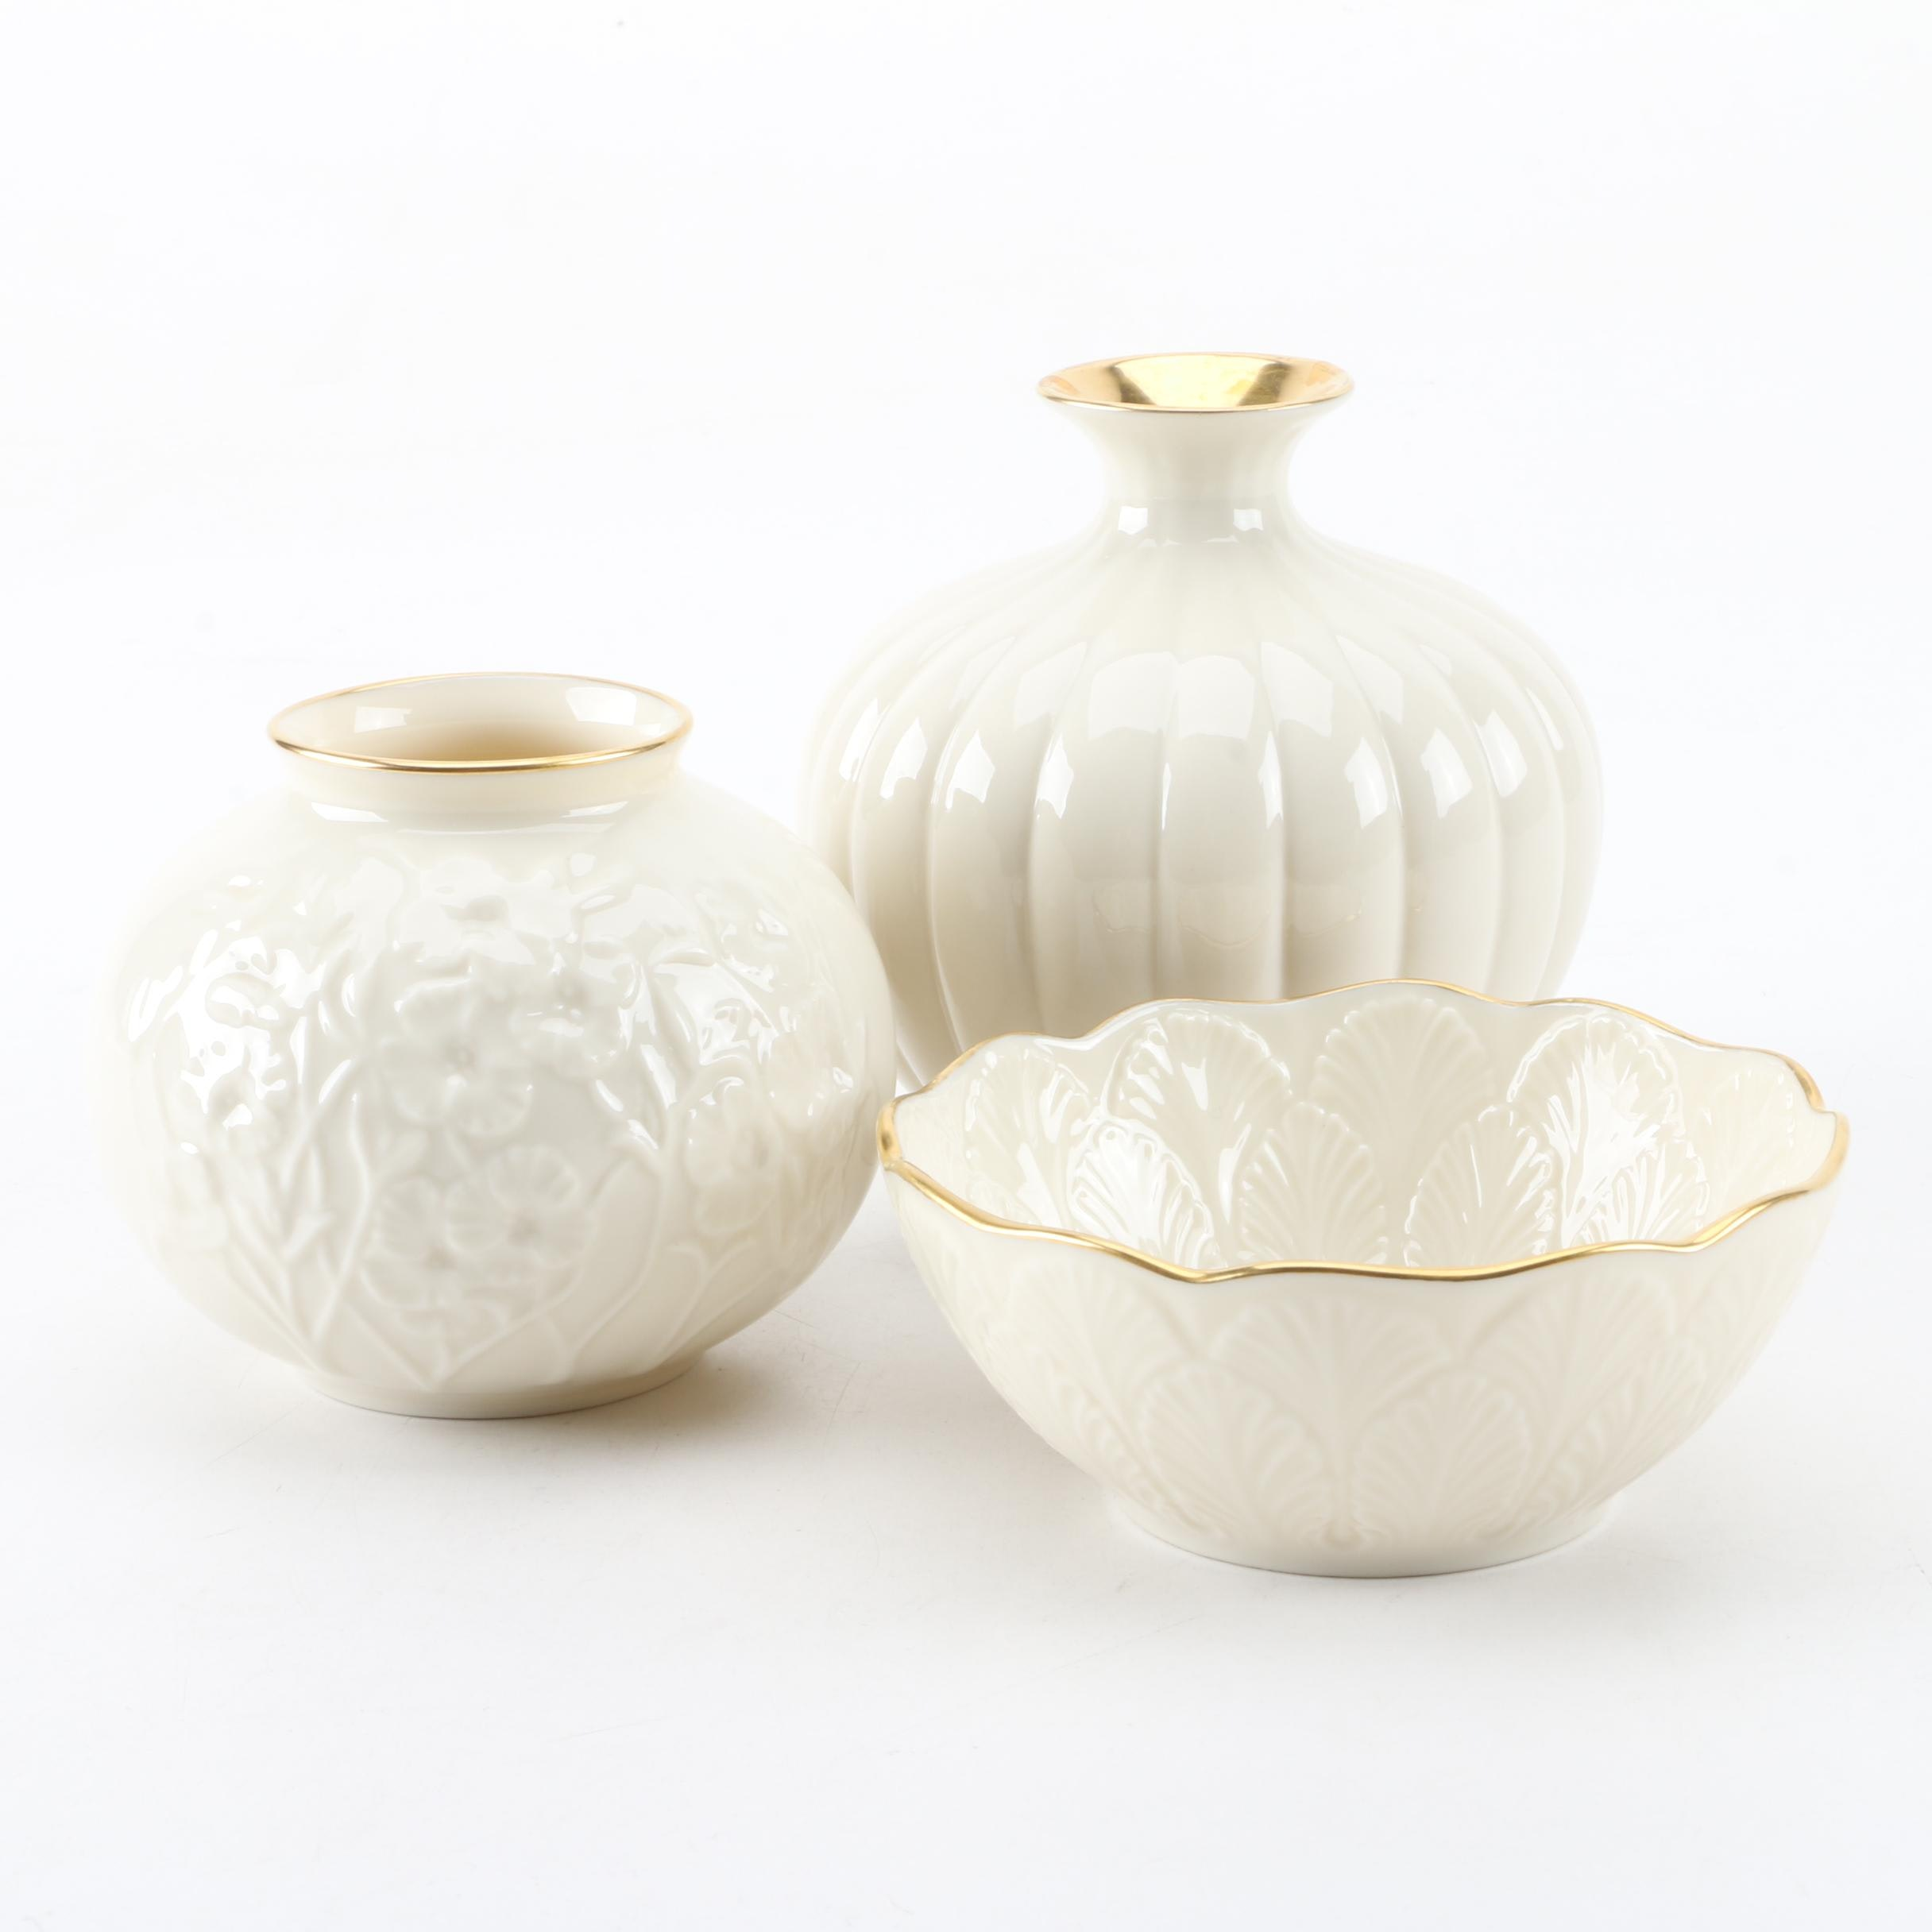 Lenox Porcelain Vases and Decor